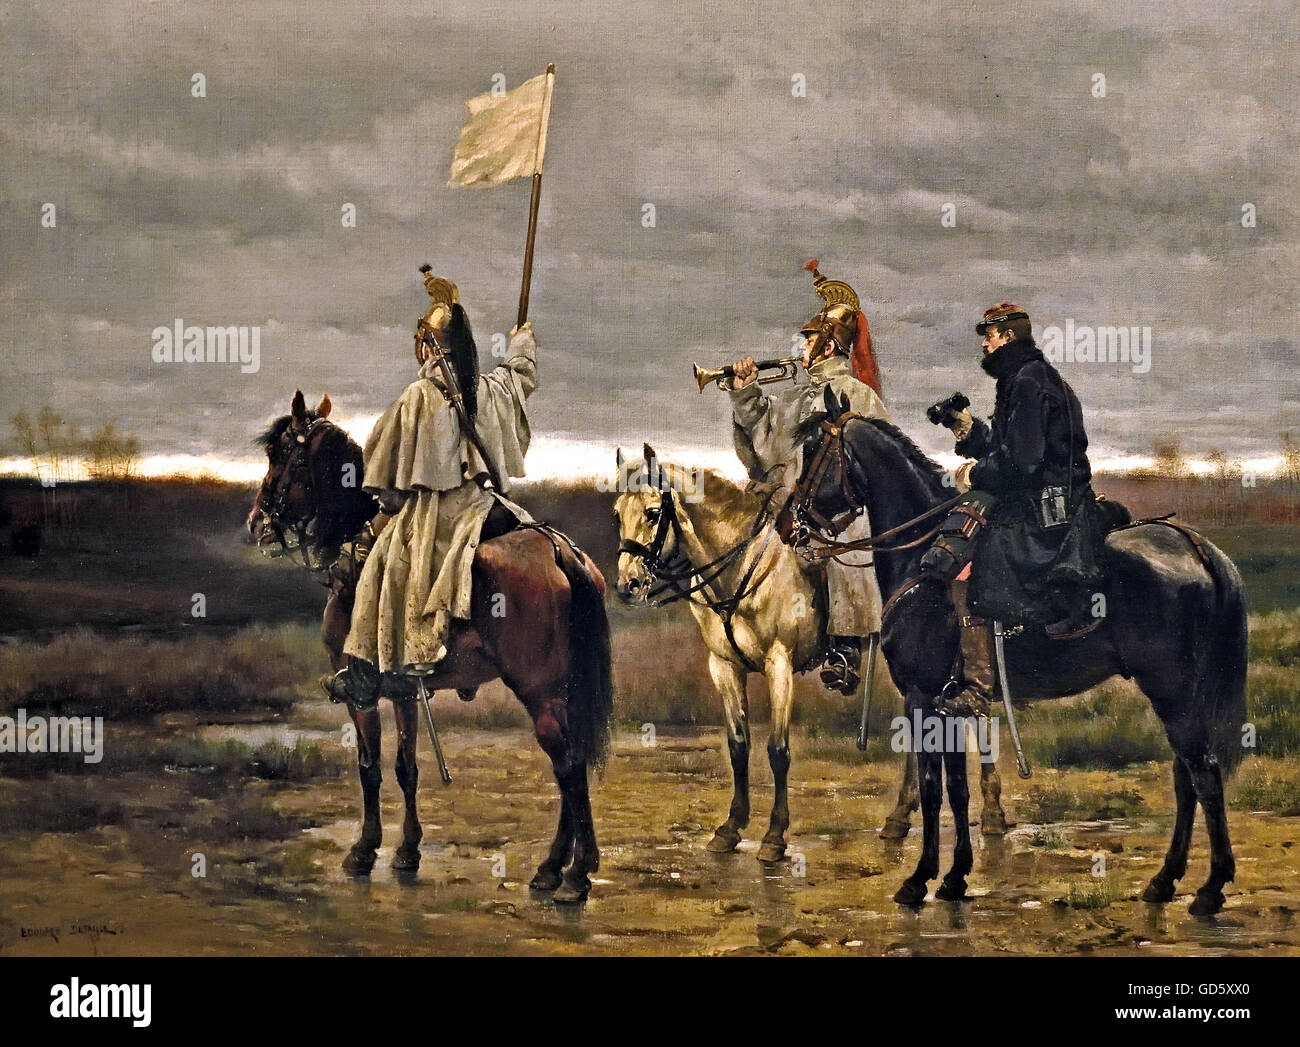 The Armistice of 28 January 1871 The Franco-Prussian War or Franco-German War (German: Deutsch-Französischer Krieg, French: Guerre franco-allemande), often referred to in France as the War of 1870 (19 July 1870 – 10 May 1871), was a conflict between the Second French Empire of Napoleon III and the German states of the North German Stock Photo